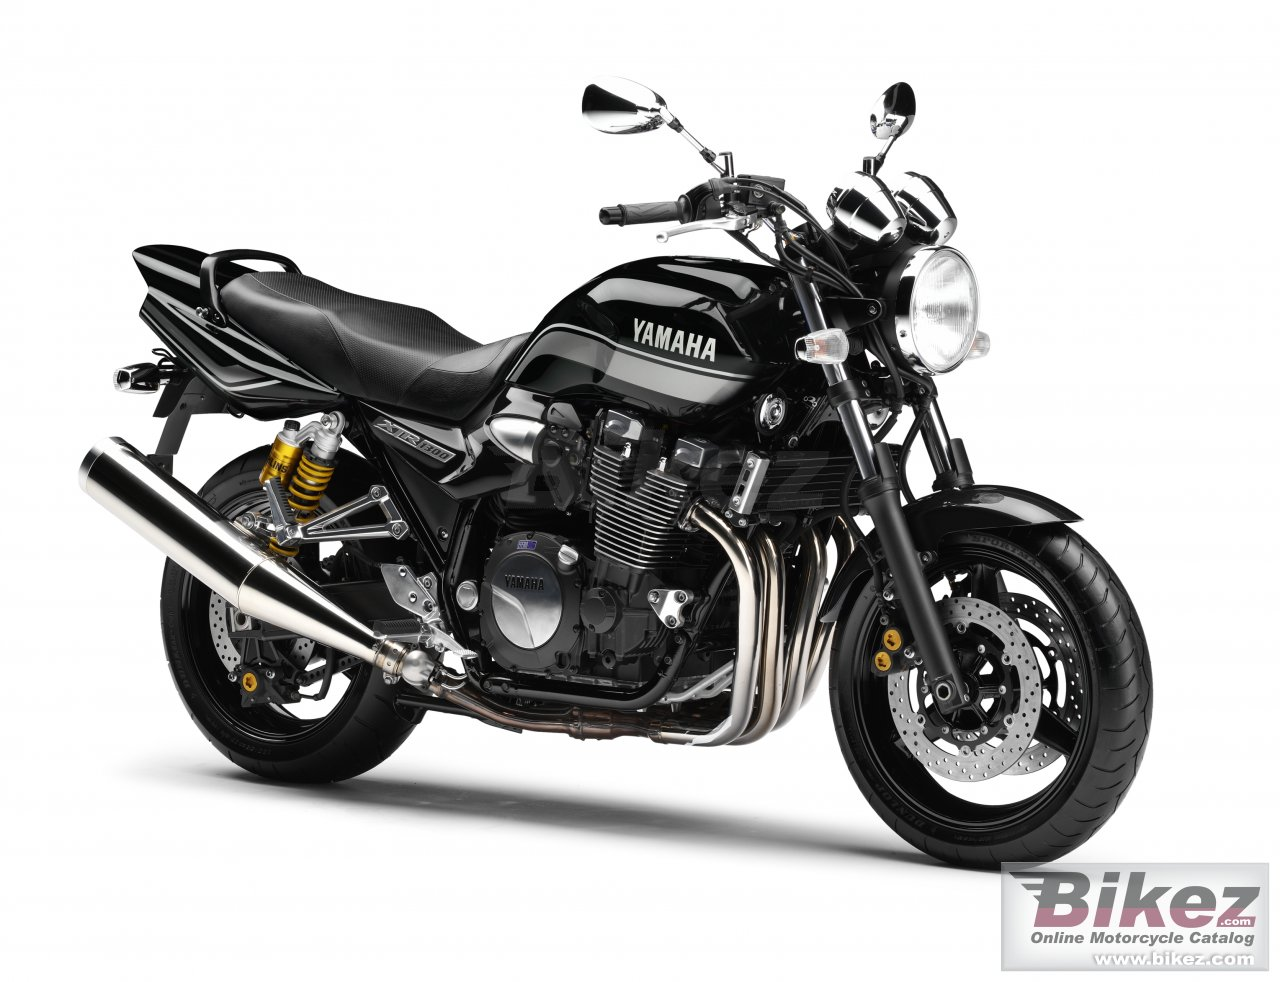 Big Yamaha xjr 1300 picture and wallpaper from Bikez.com